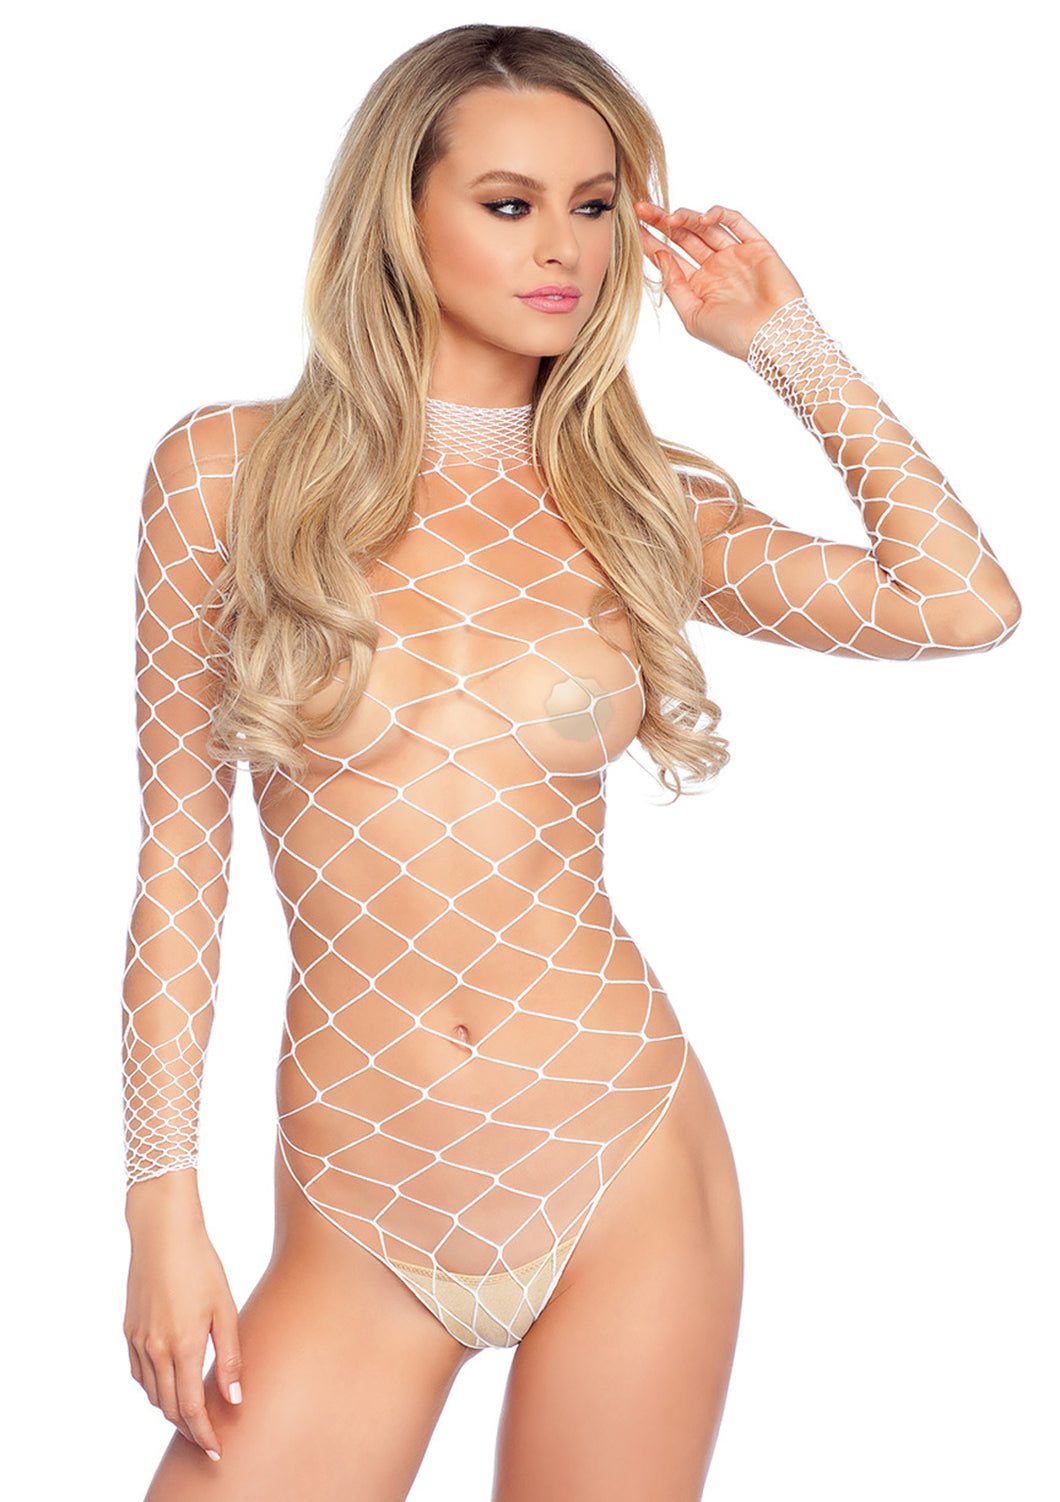 White Naomi High Neck Fence Net Long Sleeved Bodysuit with Snap Crotch Thong Panty